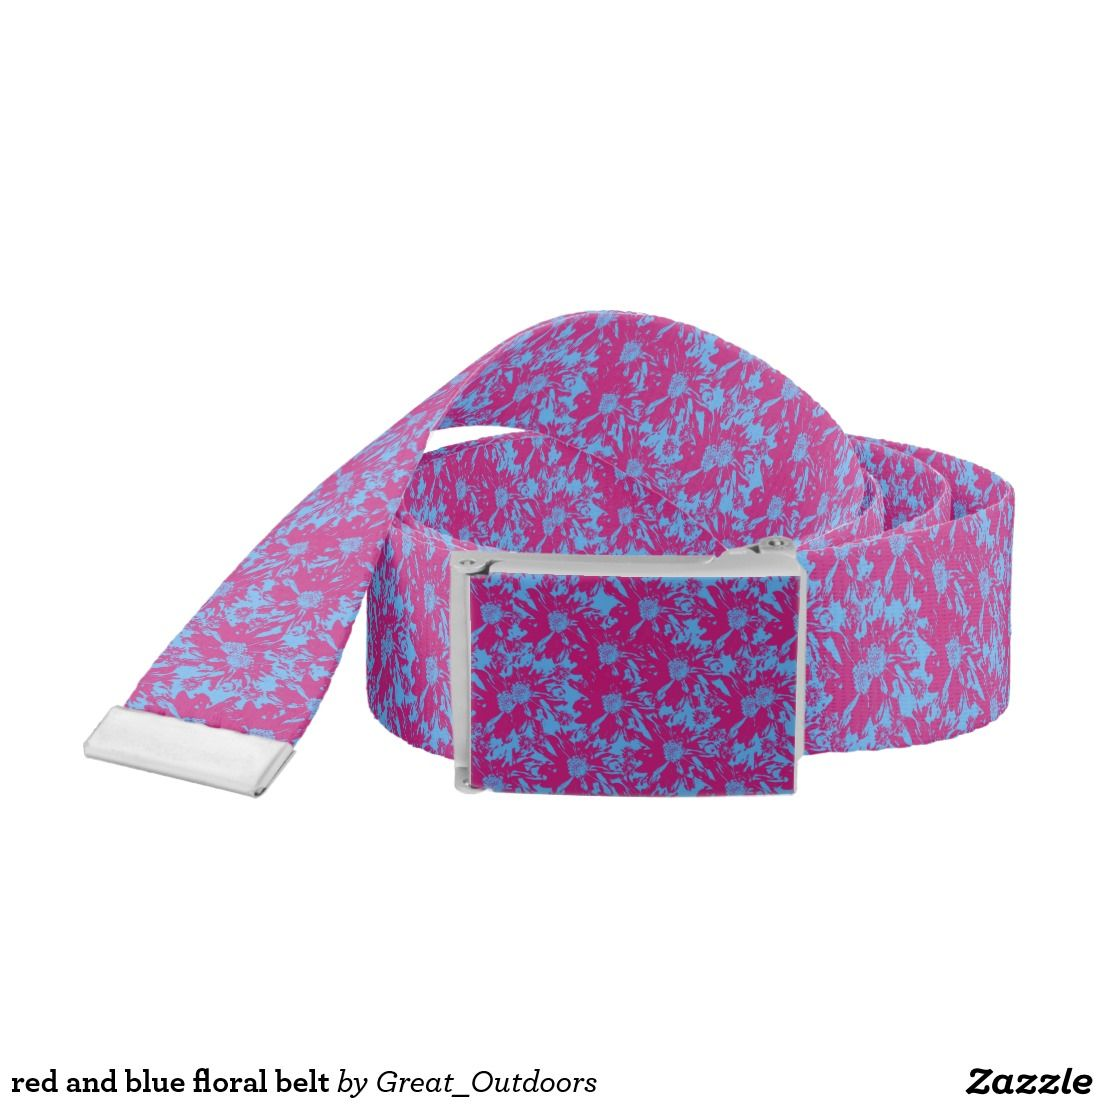 red and blue floral belt